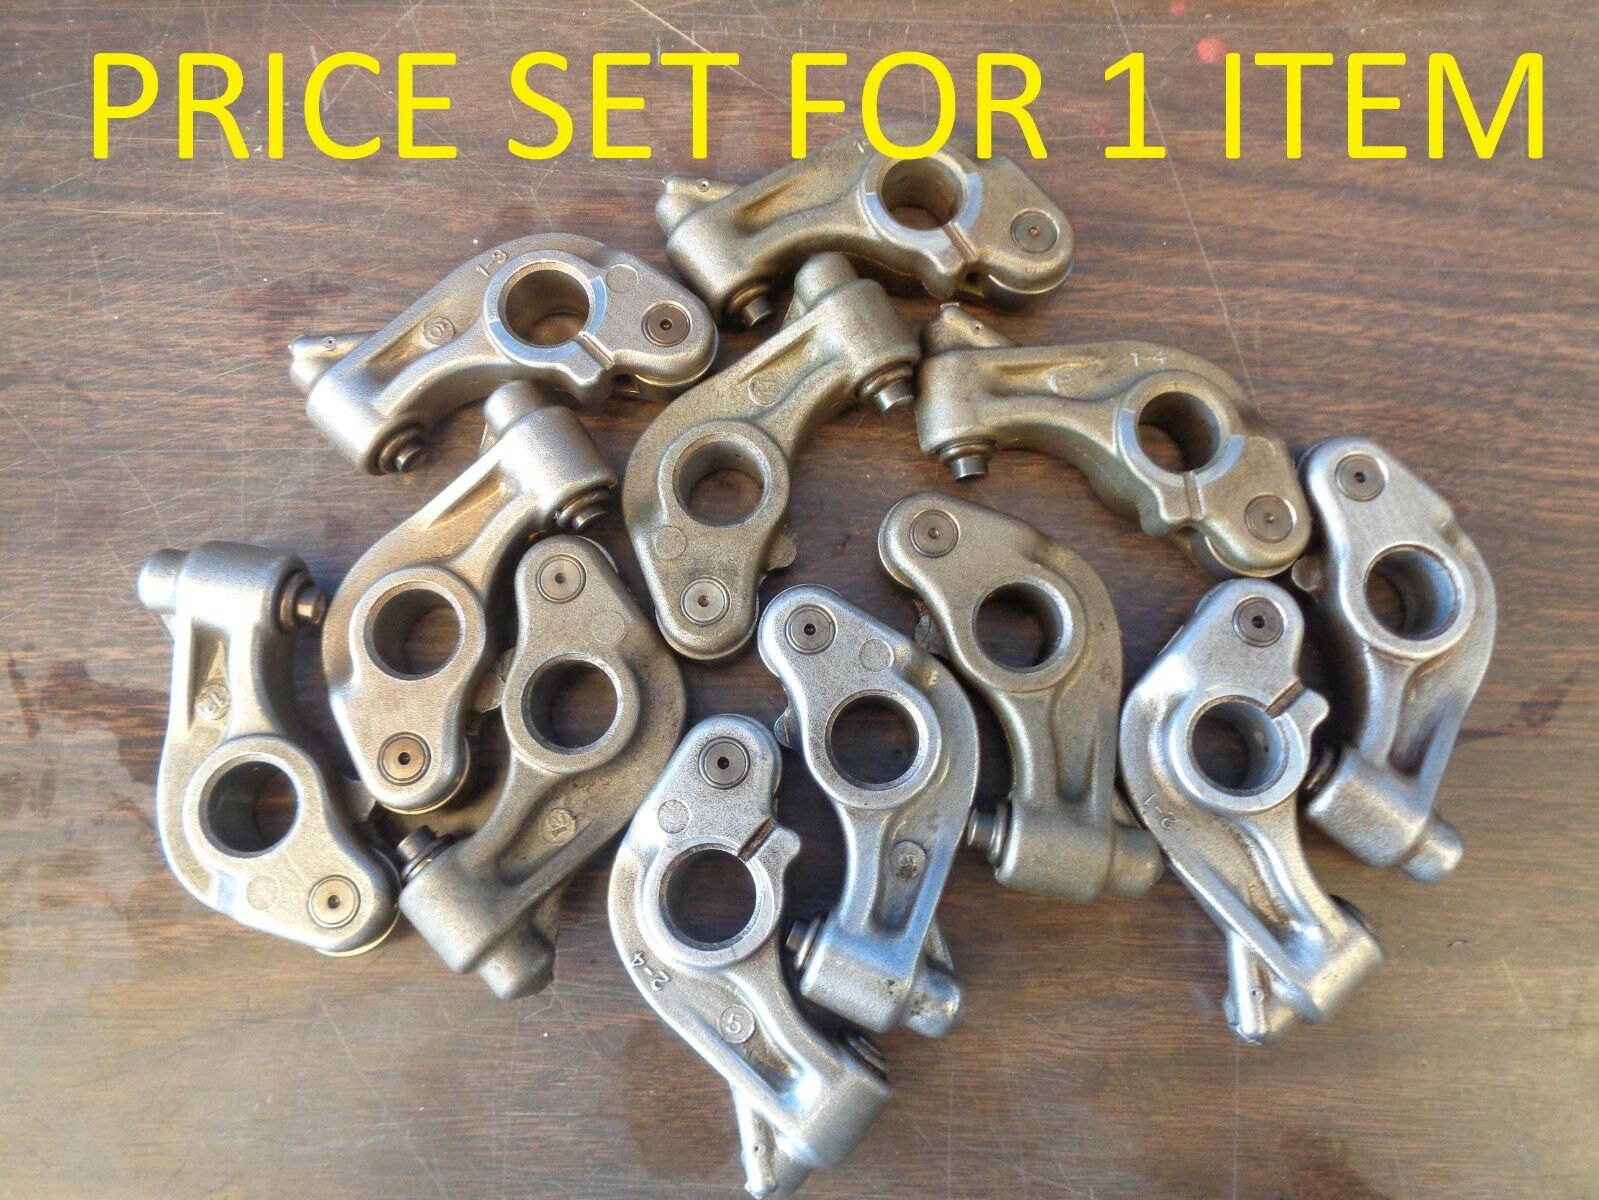 GEO METRO SUZUKI SWIFT 1995 1996 1997 ( 4 ) CYLINDER 1 3 ROCKER ARM